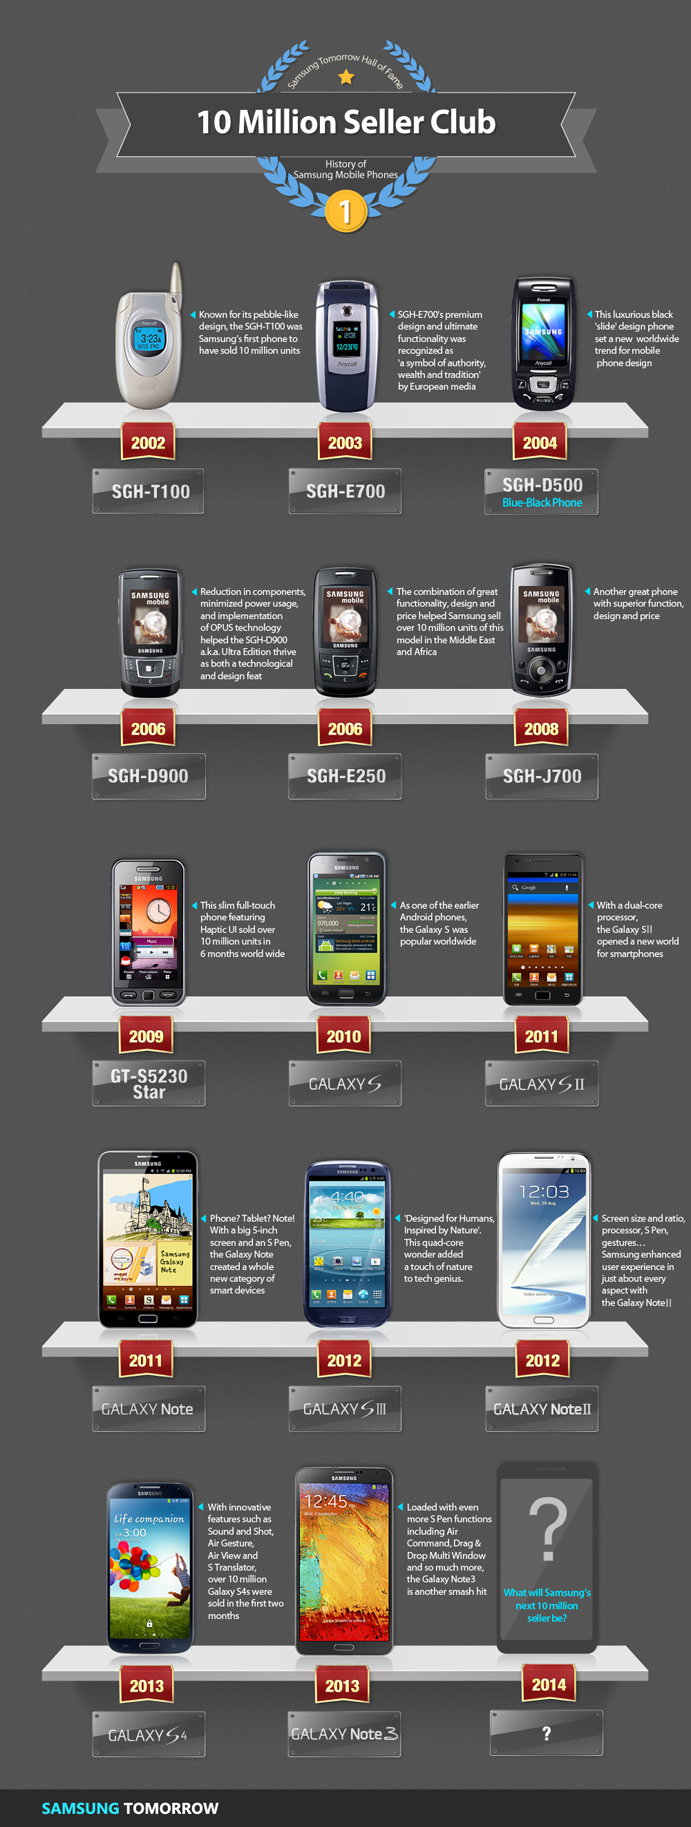 Samsung Tomorrow Hall of Fame  History of Samsung Mobile Phones: 10 Million Seller Club  SDH-T100: Known for its pebble-like design, the SGH-T100 was Samsung's first phone to have sold 10 million units  SDH-E700: SGH-E700's premium design and ultimate functionality was recognized as 'a symbol of authority, wealth and tradition' by European media  SGH-D500: This luxurious black 'slide' design phone set a new  worldwide trend for mobile phone design  SGH-D900: Reduction in components, minimized power usage, and implementation of OPUS technology helped the SGH-D900 a.k.a. Ultra Edition thrive as both a technological and design feat  SGH-E250: The combination of great functionality, design and price helped Samsung sell over 10 million units of this model in the Middle East and Africa  SDH-J700: Another great phone with superior function, design and price  GT-S5230 star: This slim full-touch phone featuring Haptic UI sold over 10 million units in 6 months world wide  Galaxy S: As one of the earlier Android phones,the Galaxy S was popular worldwide  Galaxy S2: With a dual-core processor, the GalaxySⅡ opened a new world for smartphones  Galaxy Note: Phone? Tablet? Note! With a big 5-inch screen and an S Pen, the Galaxy Note created a whole new category of smart devices  Galaxy S3: 'Designed for Humans, Inspired by Nature'. This quad-core wonder added a touch of nature to tech genius.  Galaxy Note2: Screen size and ratio, processor, S Pen, gestures… Samsung enhanced user experience in just about every aspect with the Galaxy NoteⅡ  Galaxy S4: With innovative features such as Sound and Shot, Air Gesture, Air View and S Translator, over 10 million Galaxy S4s were sold in the first two months  Galaxy Note 3: Loaded with even more S Pen functions including Air Command, Drag & Drop Multi Window and so much more, the Galaxy Note3 is another smash hit.  What will Samsung's next 10 million seller be?